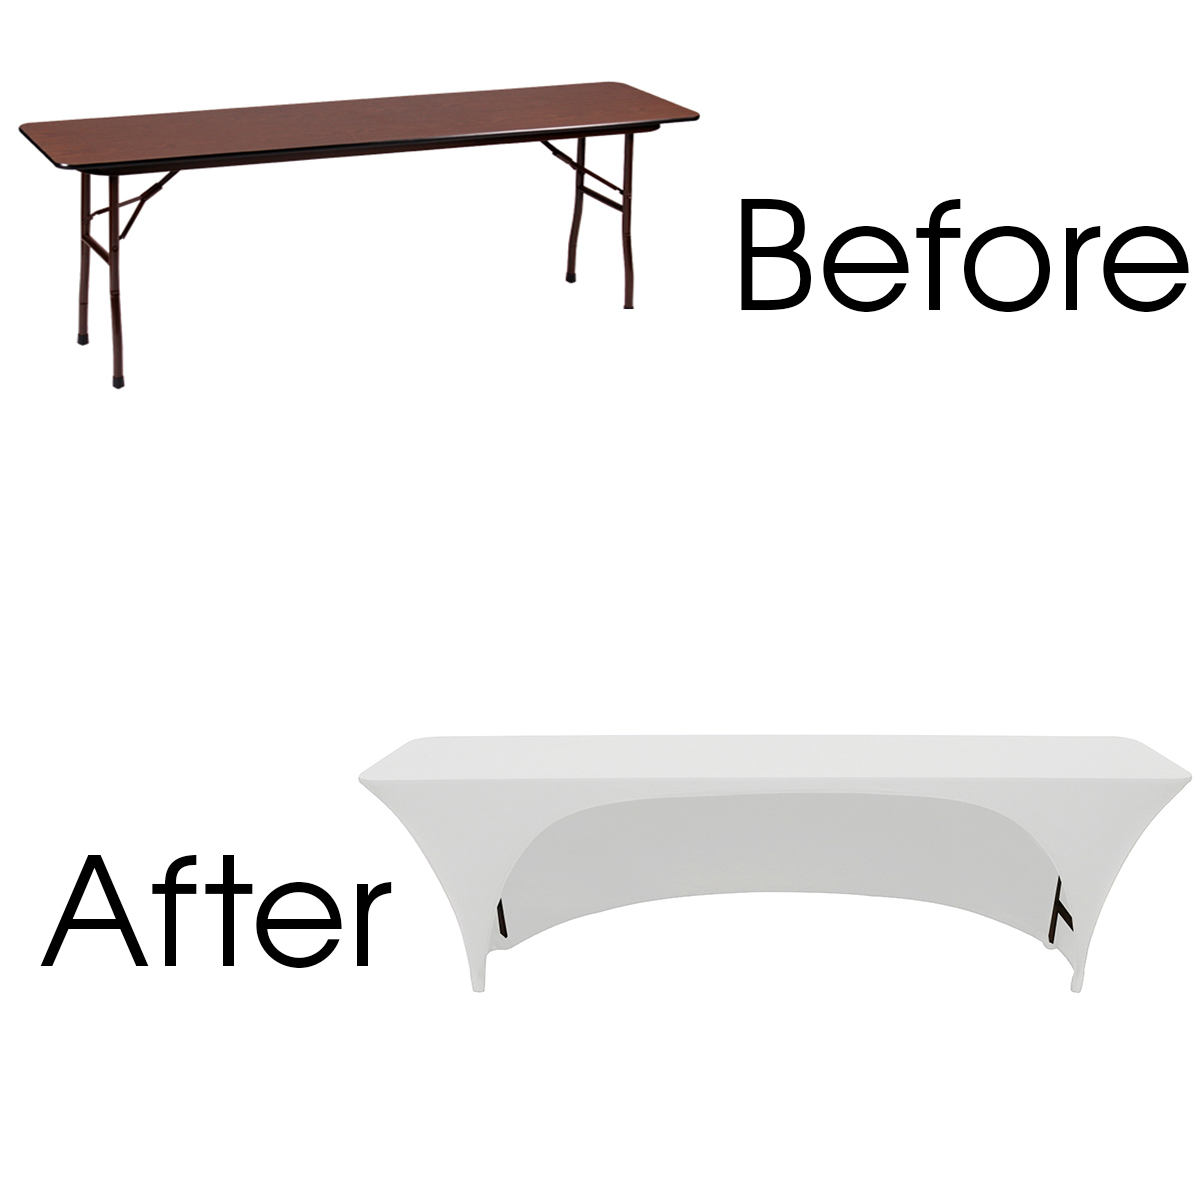 stretch-spandex-8ft-18-inches-open-back-rectangular-table-covers-white-before-after.jpg